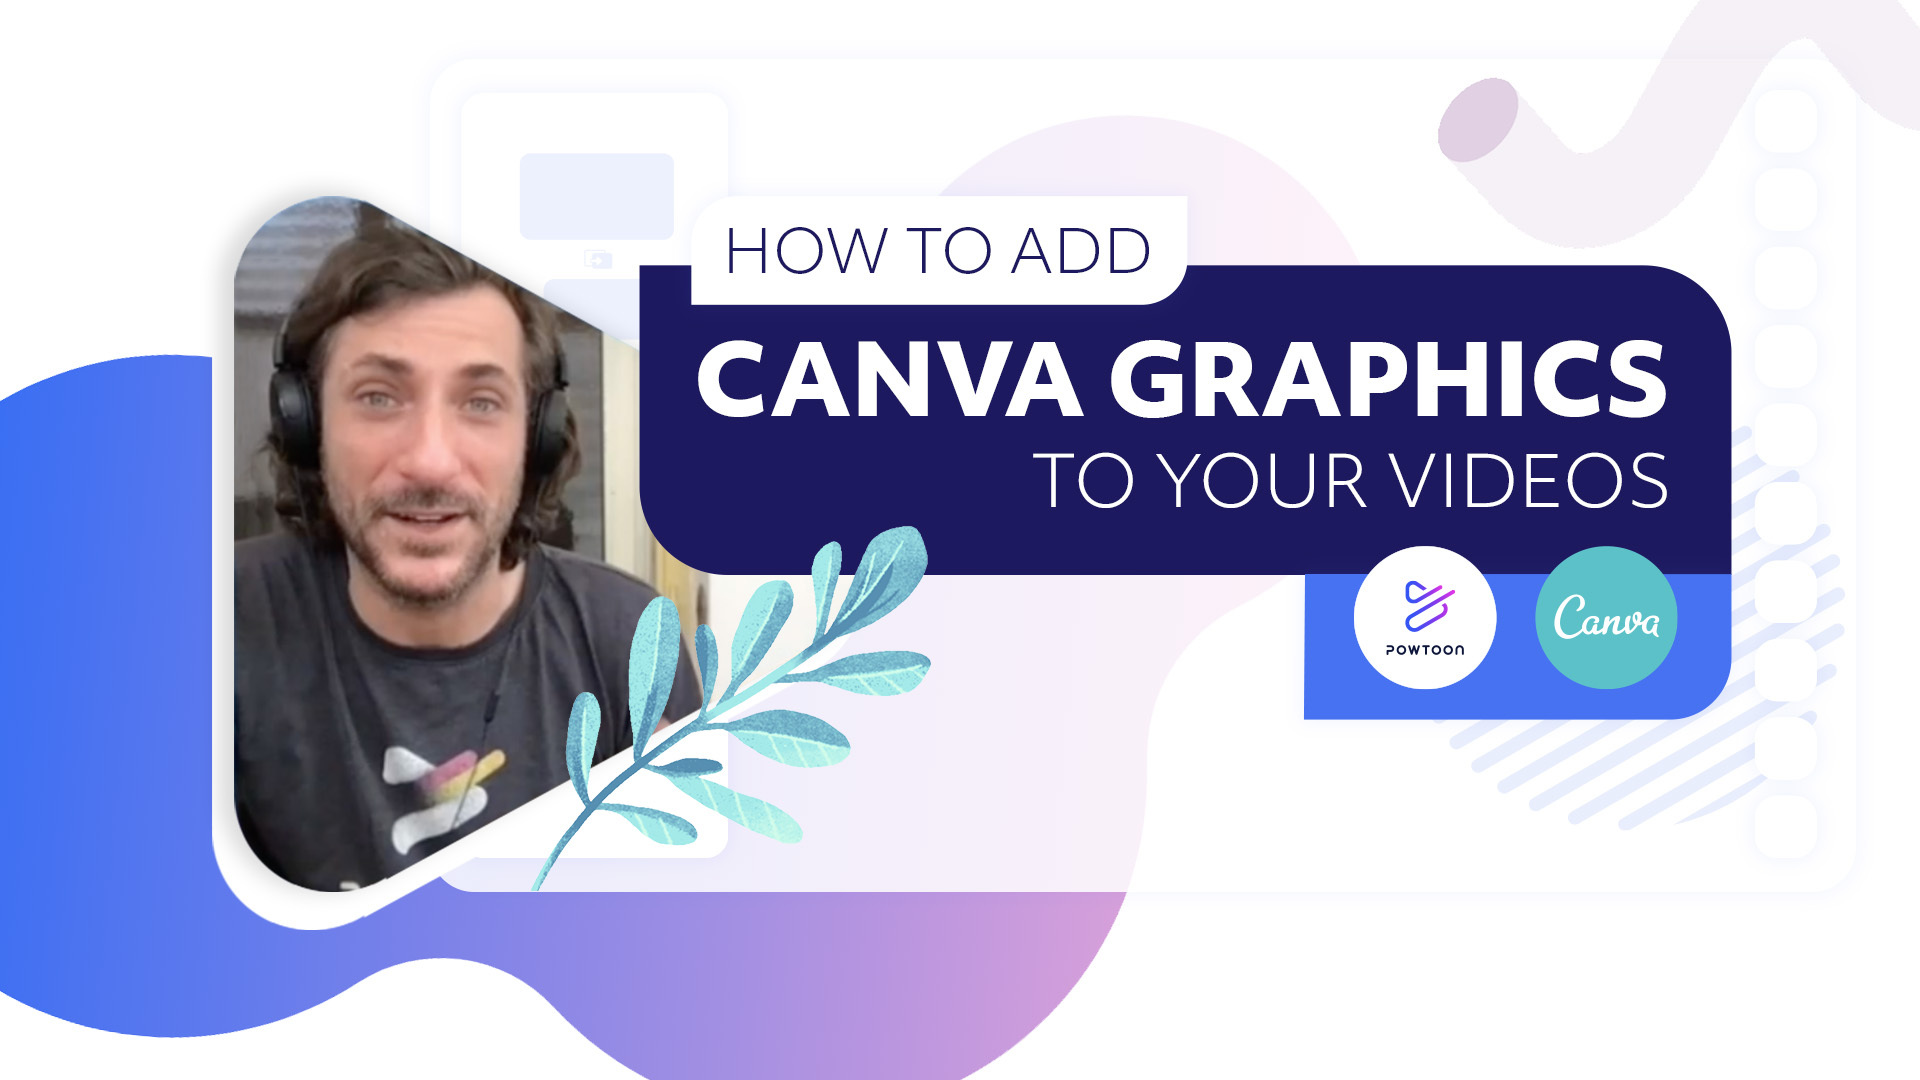 How to add canva graphics to your videos